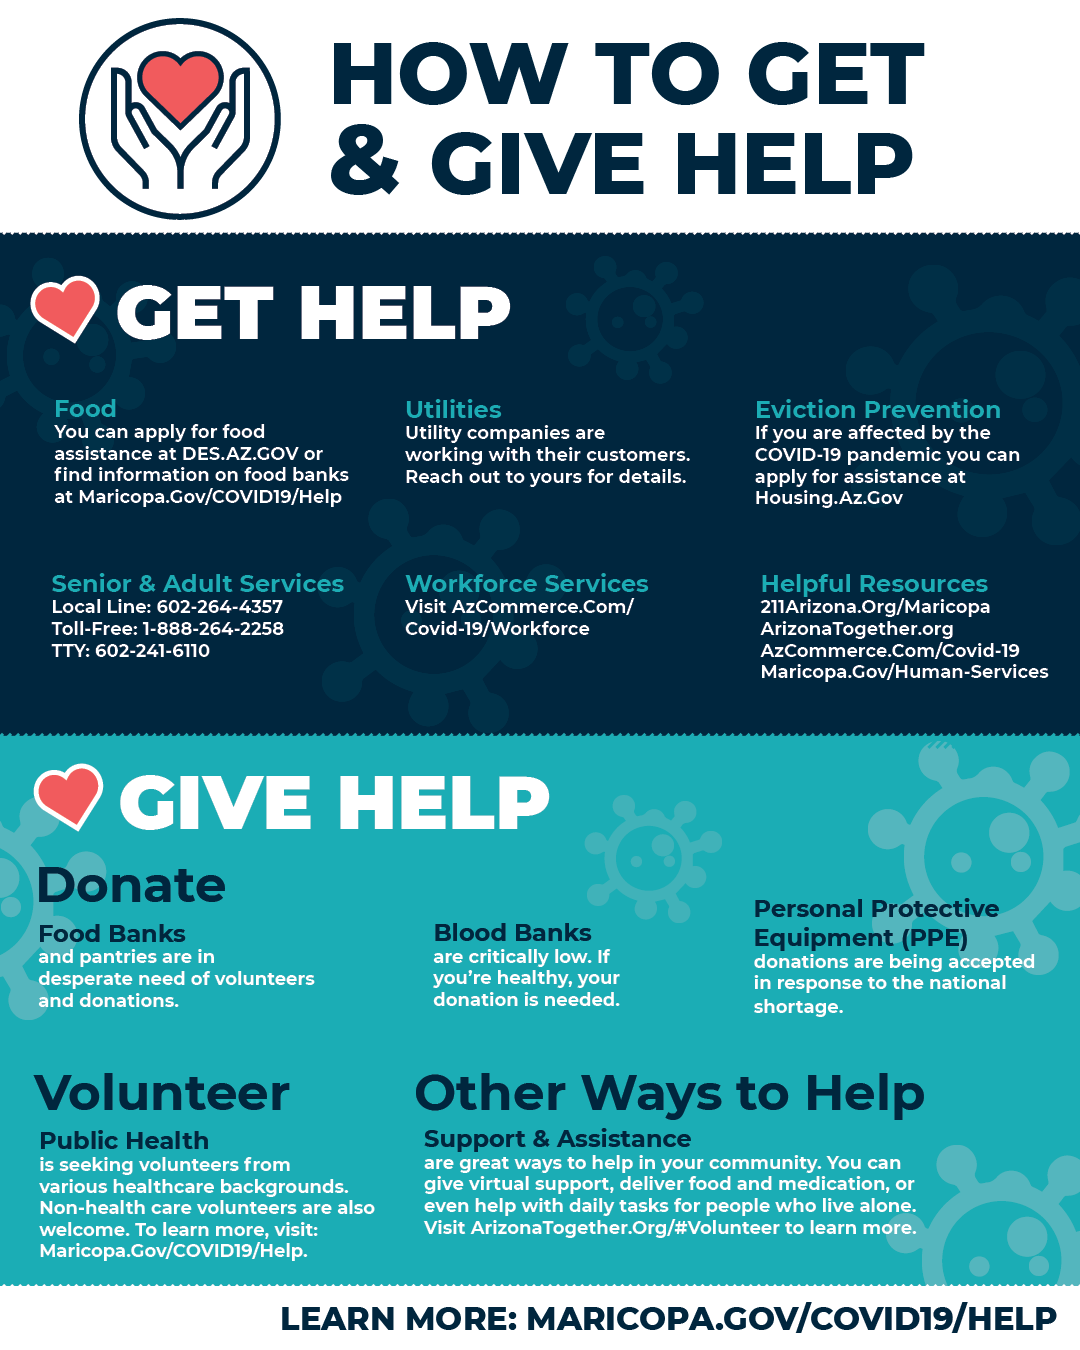 Get and Give Help